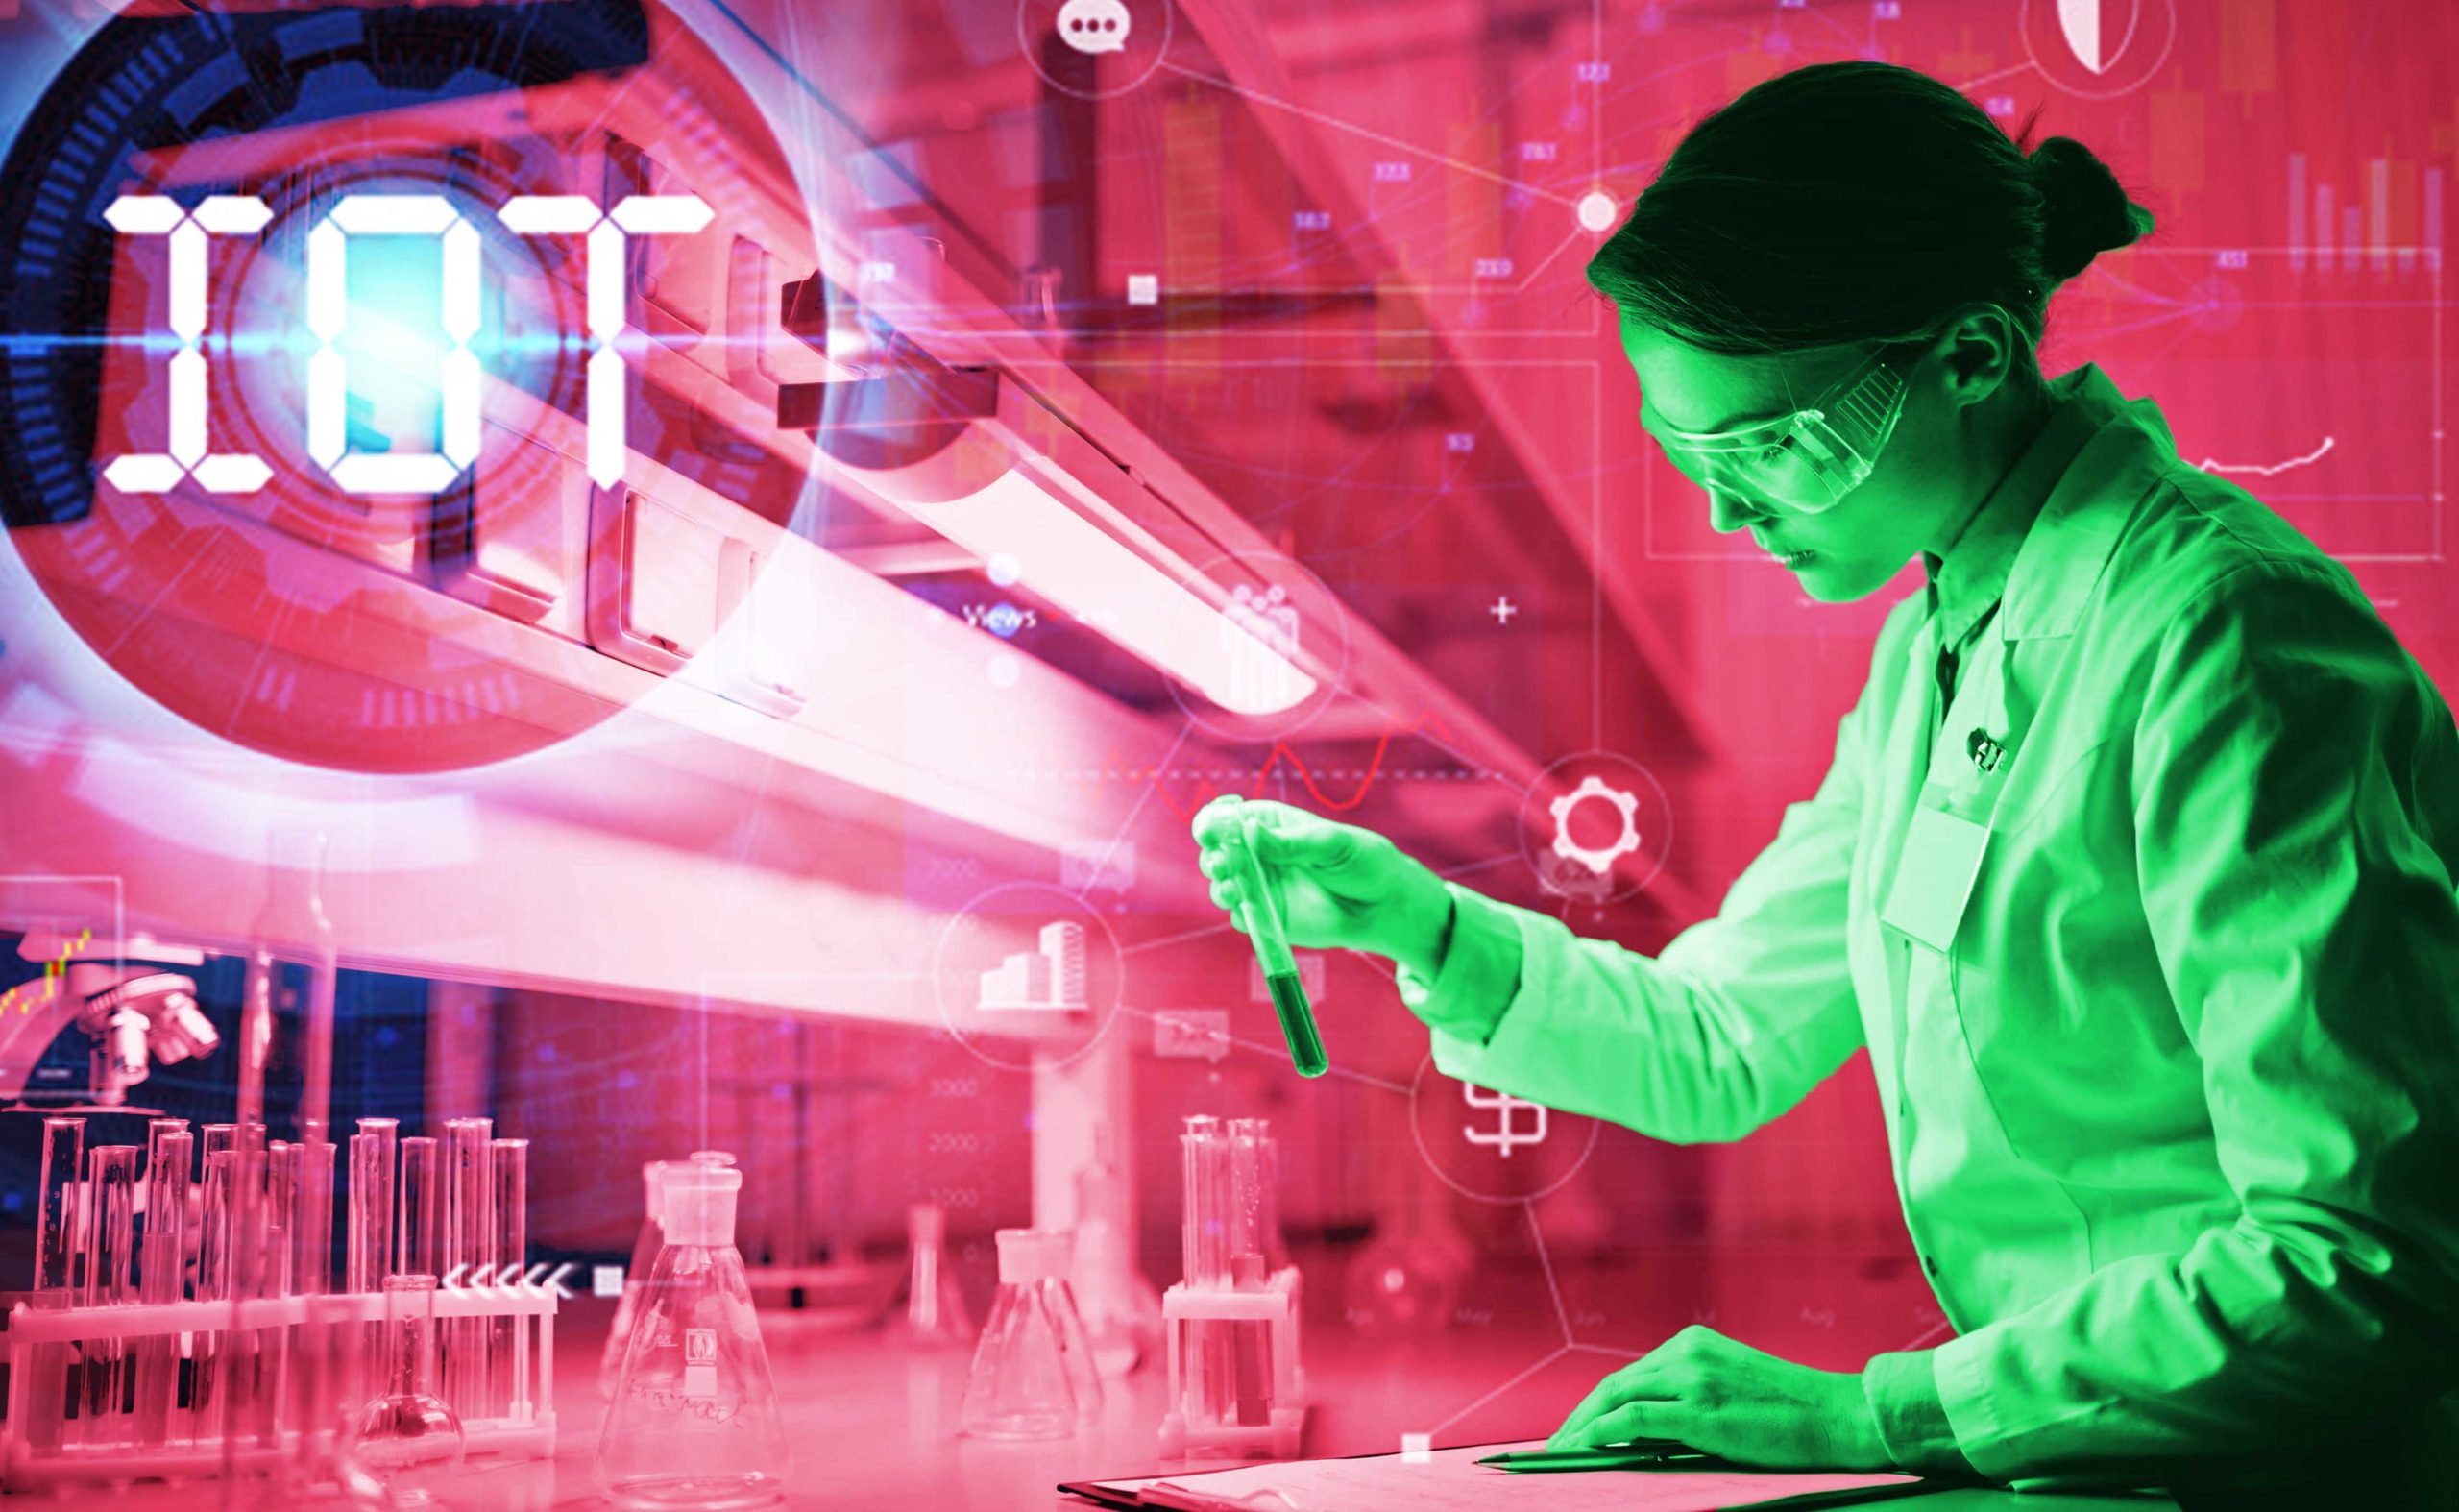 Smart Labs: How IoT is Revolutionizing Research and Development